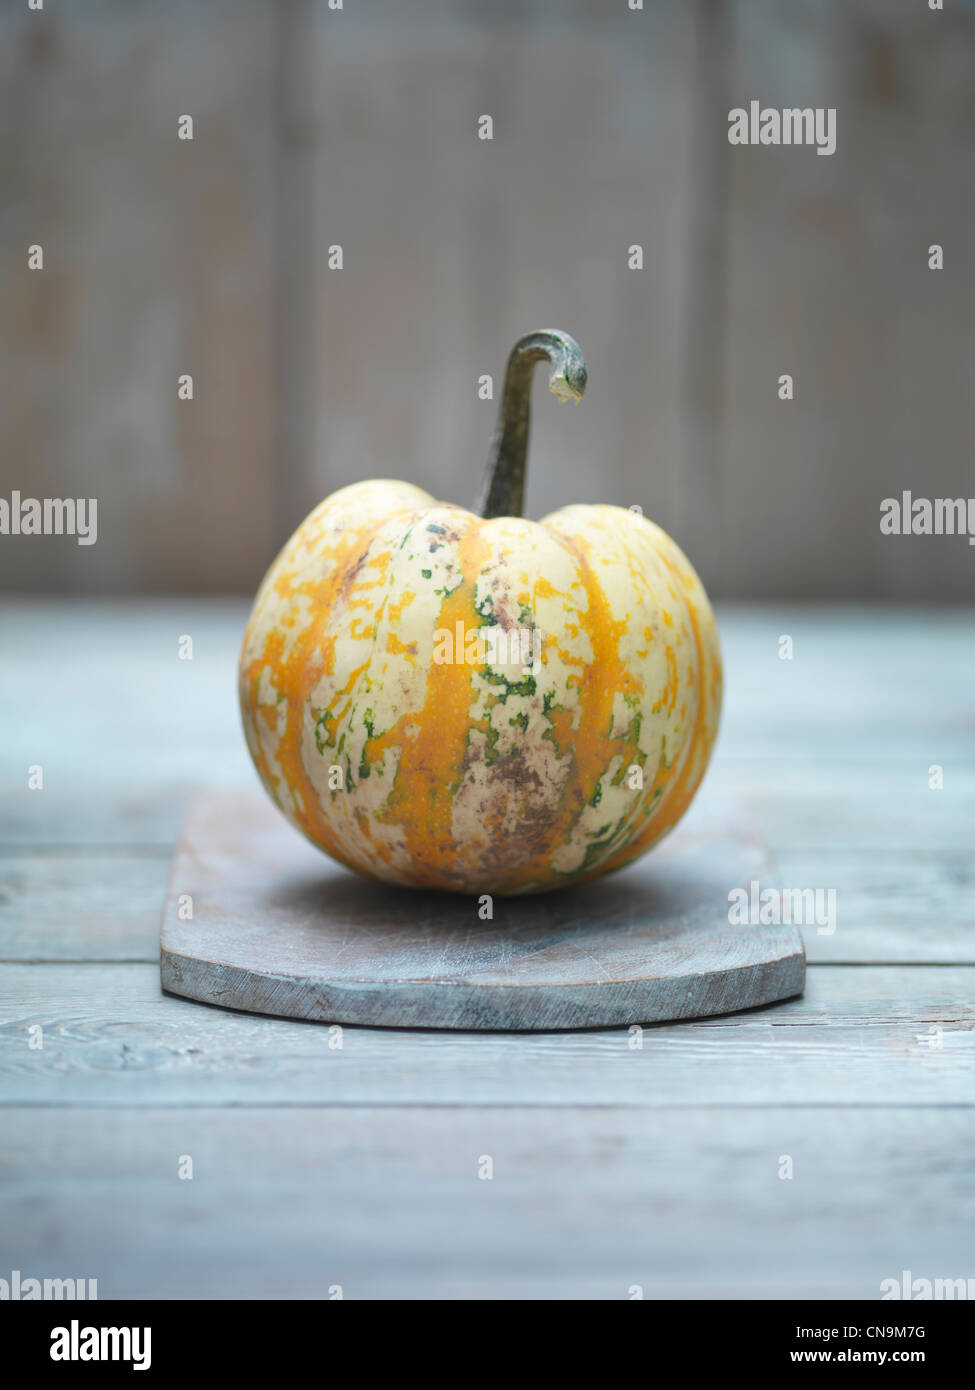 Yellow squash on wooden board - Stock Image